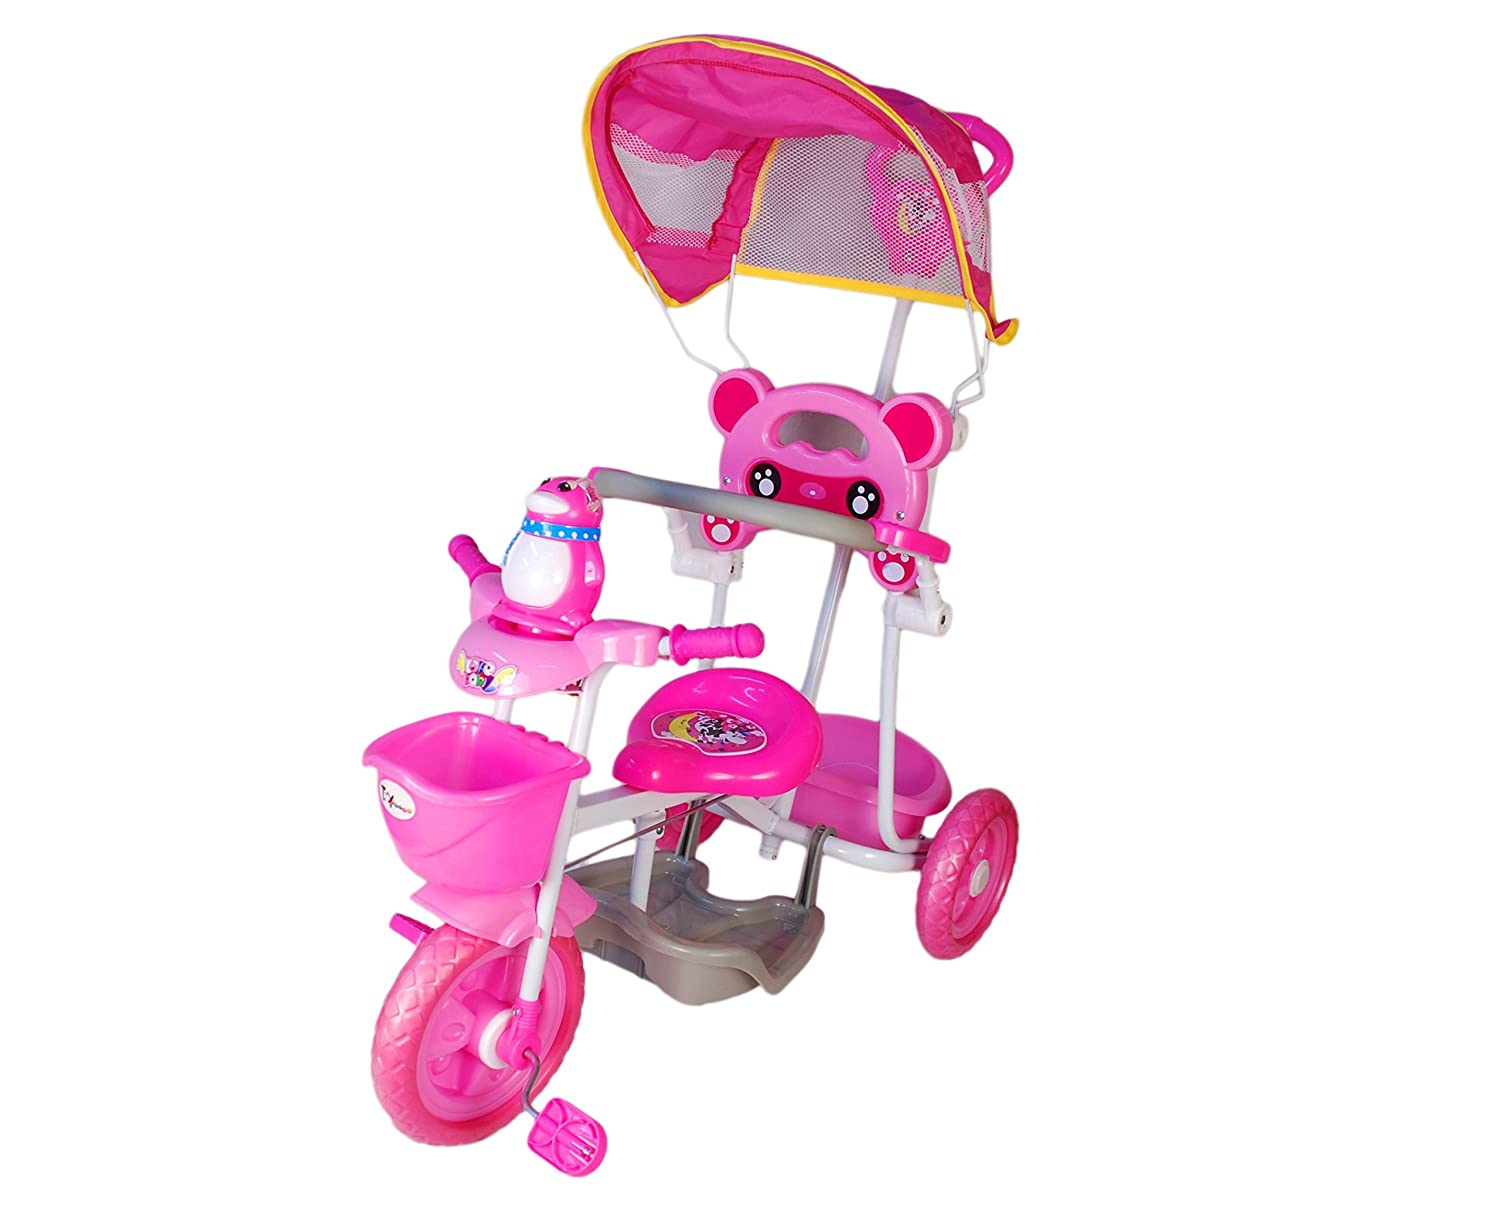 Toyhouse Easy to Steer Penguin Baby Tricycle with Canopy and Push Handle Steering System Pink Amazon.in Toys u0026 Games  sc 1 st  Amazon.in & Toyhouse Easy to Steer Penguin Baby Tricycle with Canopy and Push ...